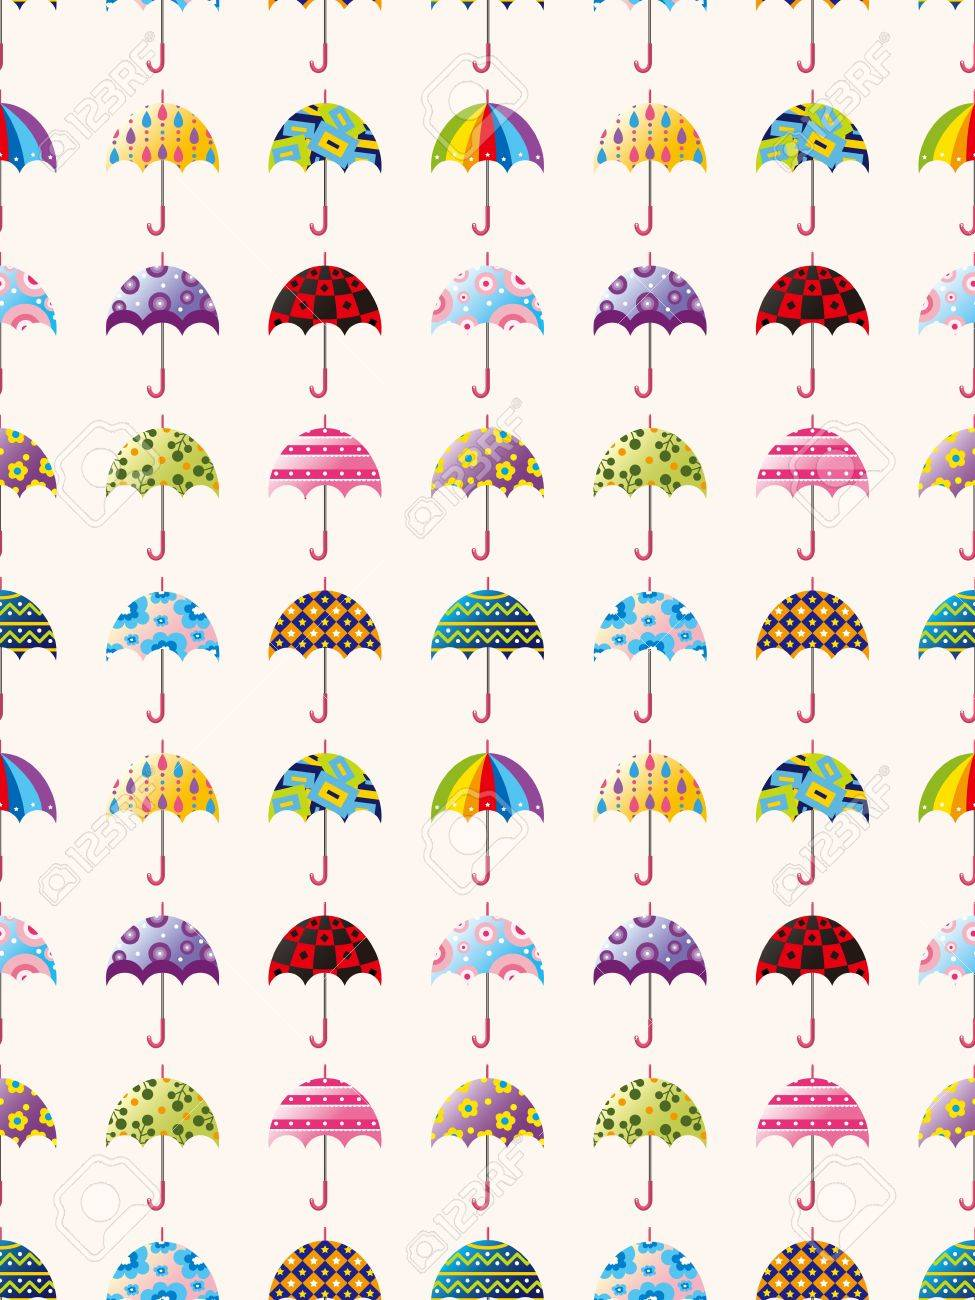 Umbrella Pattern Amazing Design Inspiration